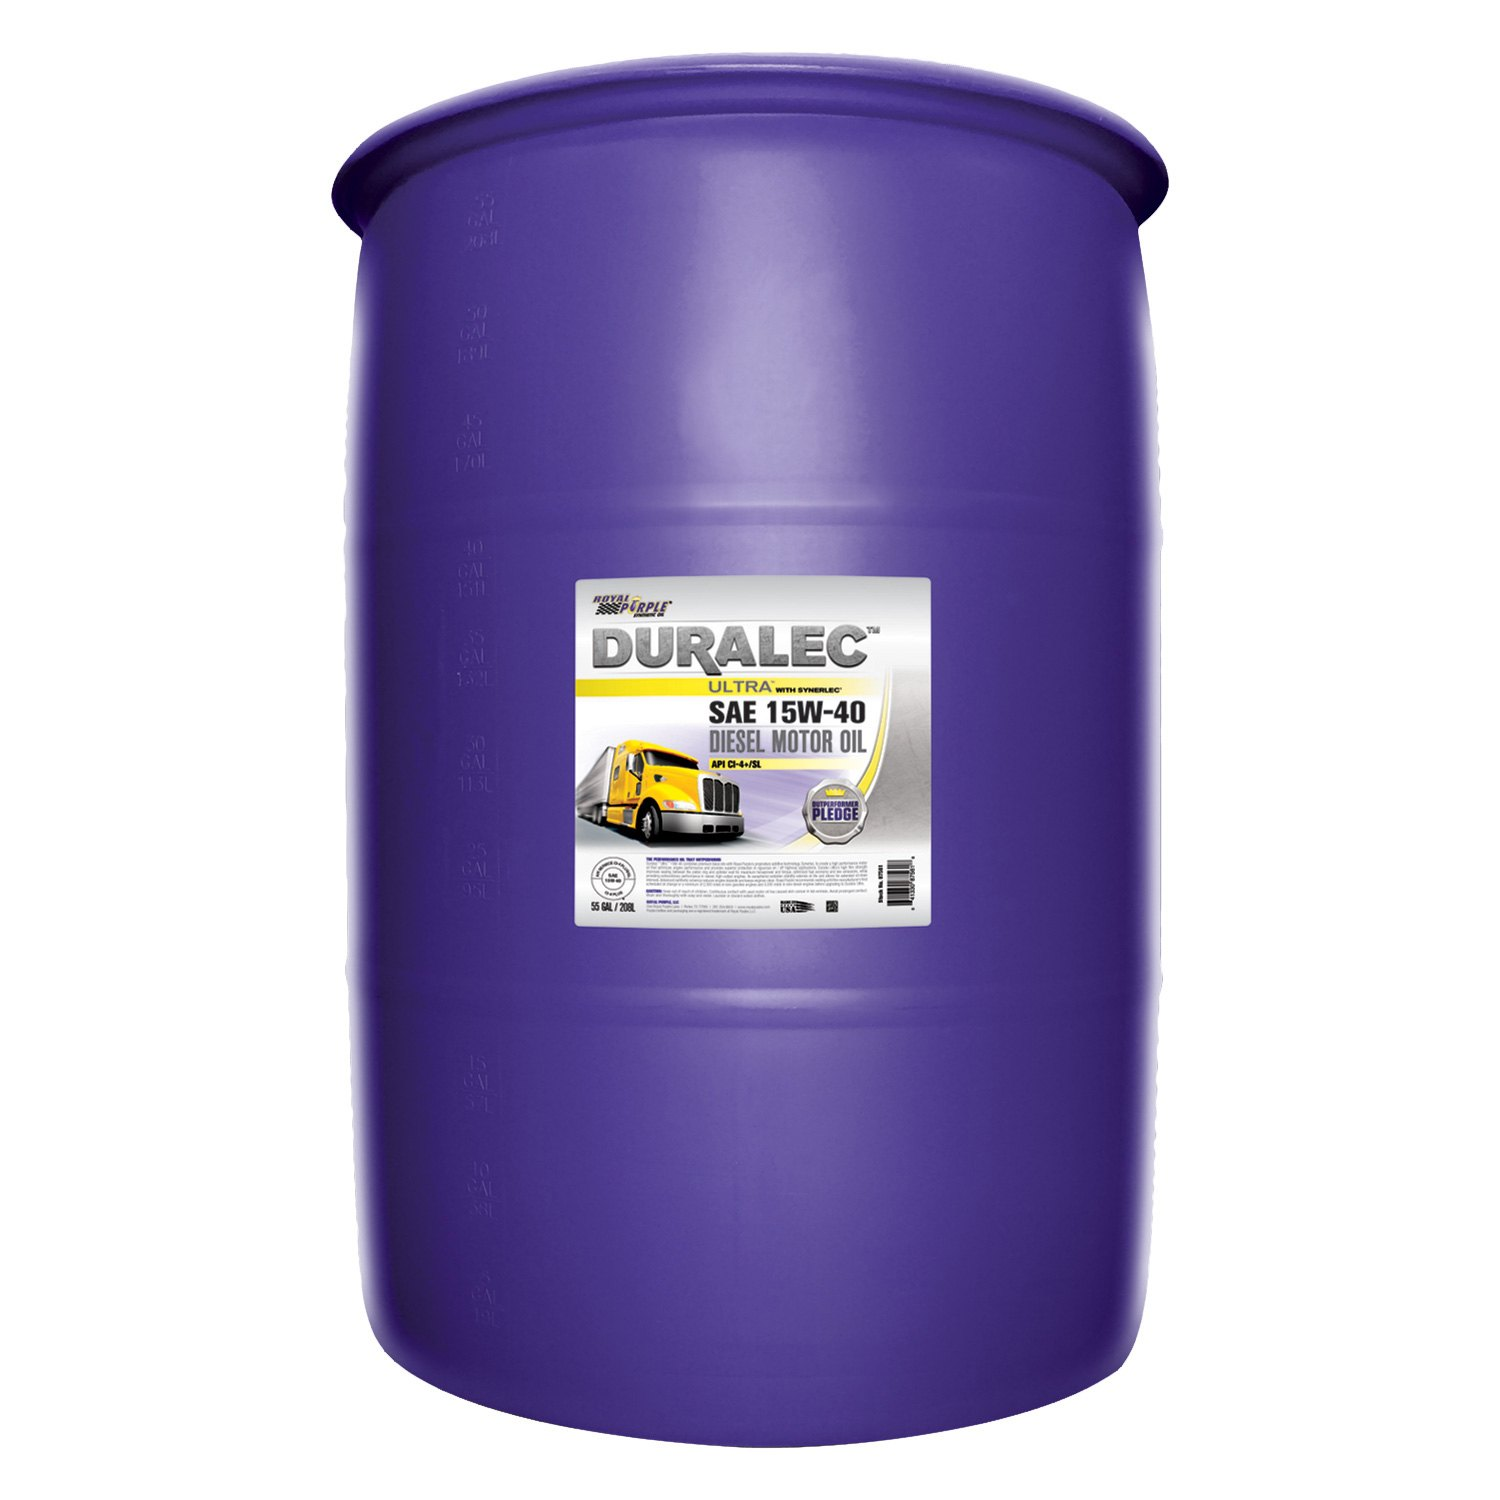 royal purple 87561 duralec ultra sae 15w 40 high On 55 gallon motor oil prices